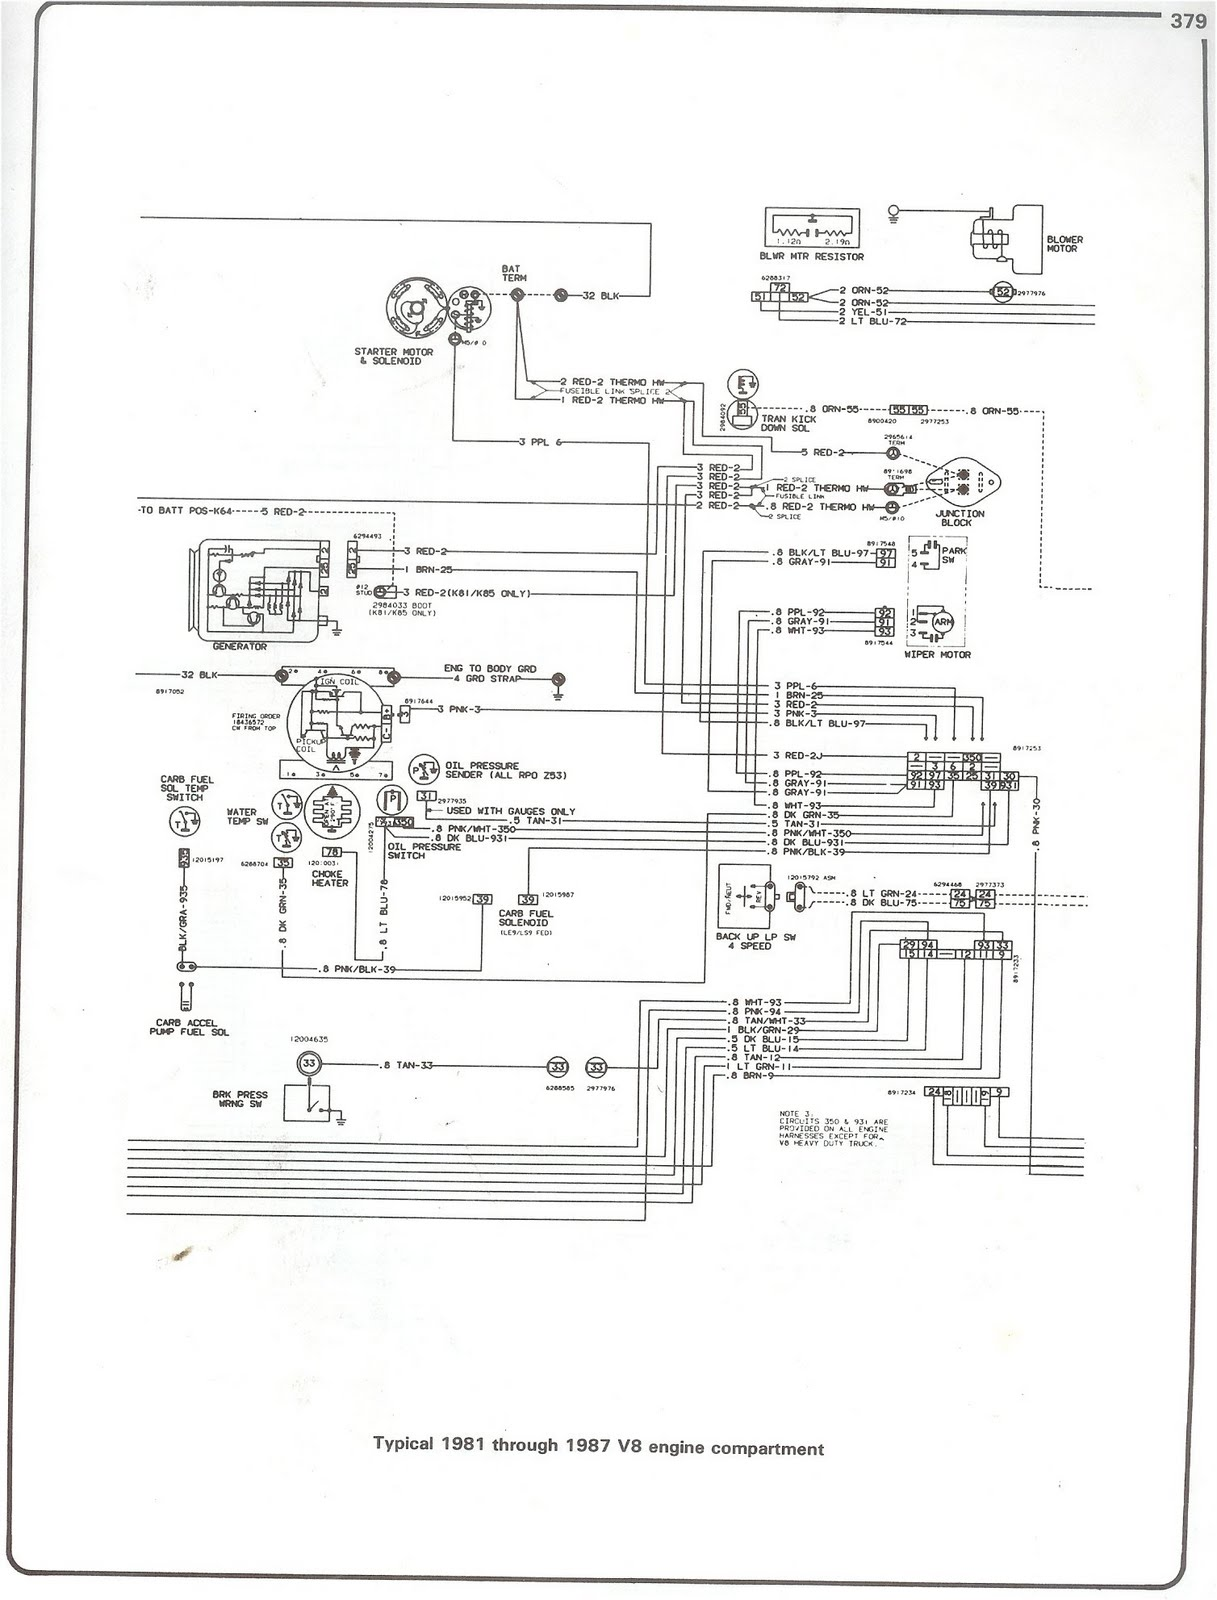 1990 chevy truck headlight wiring diagram free auto wiring diagram: 1981-1987 chevrolet v8 truck ... 1987 chevy truck headlight wiring diagram